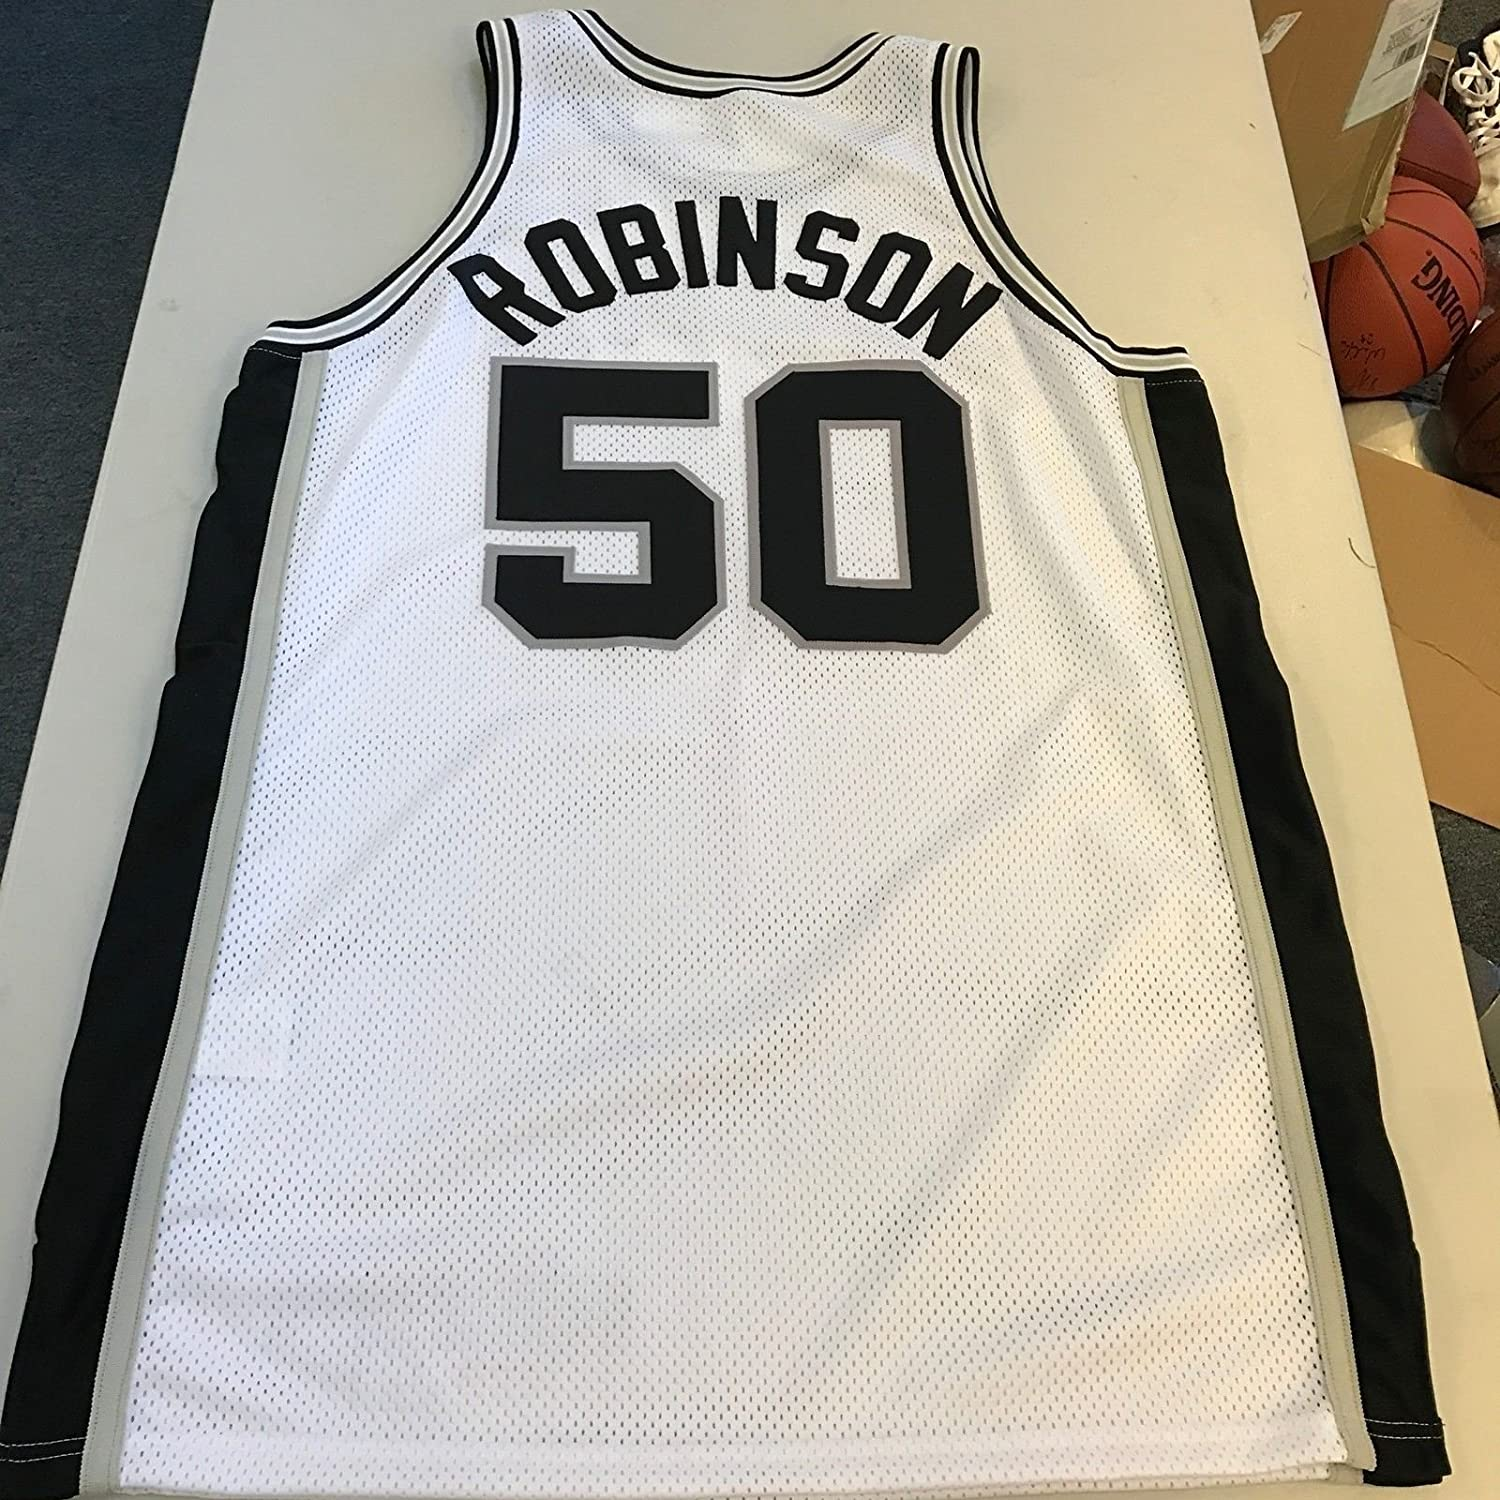 1998-99 David Robinson NBA Finals Game Used San Antonio Spurs Jersey at  Amazon s Sports Collectibles Store 246286d40